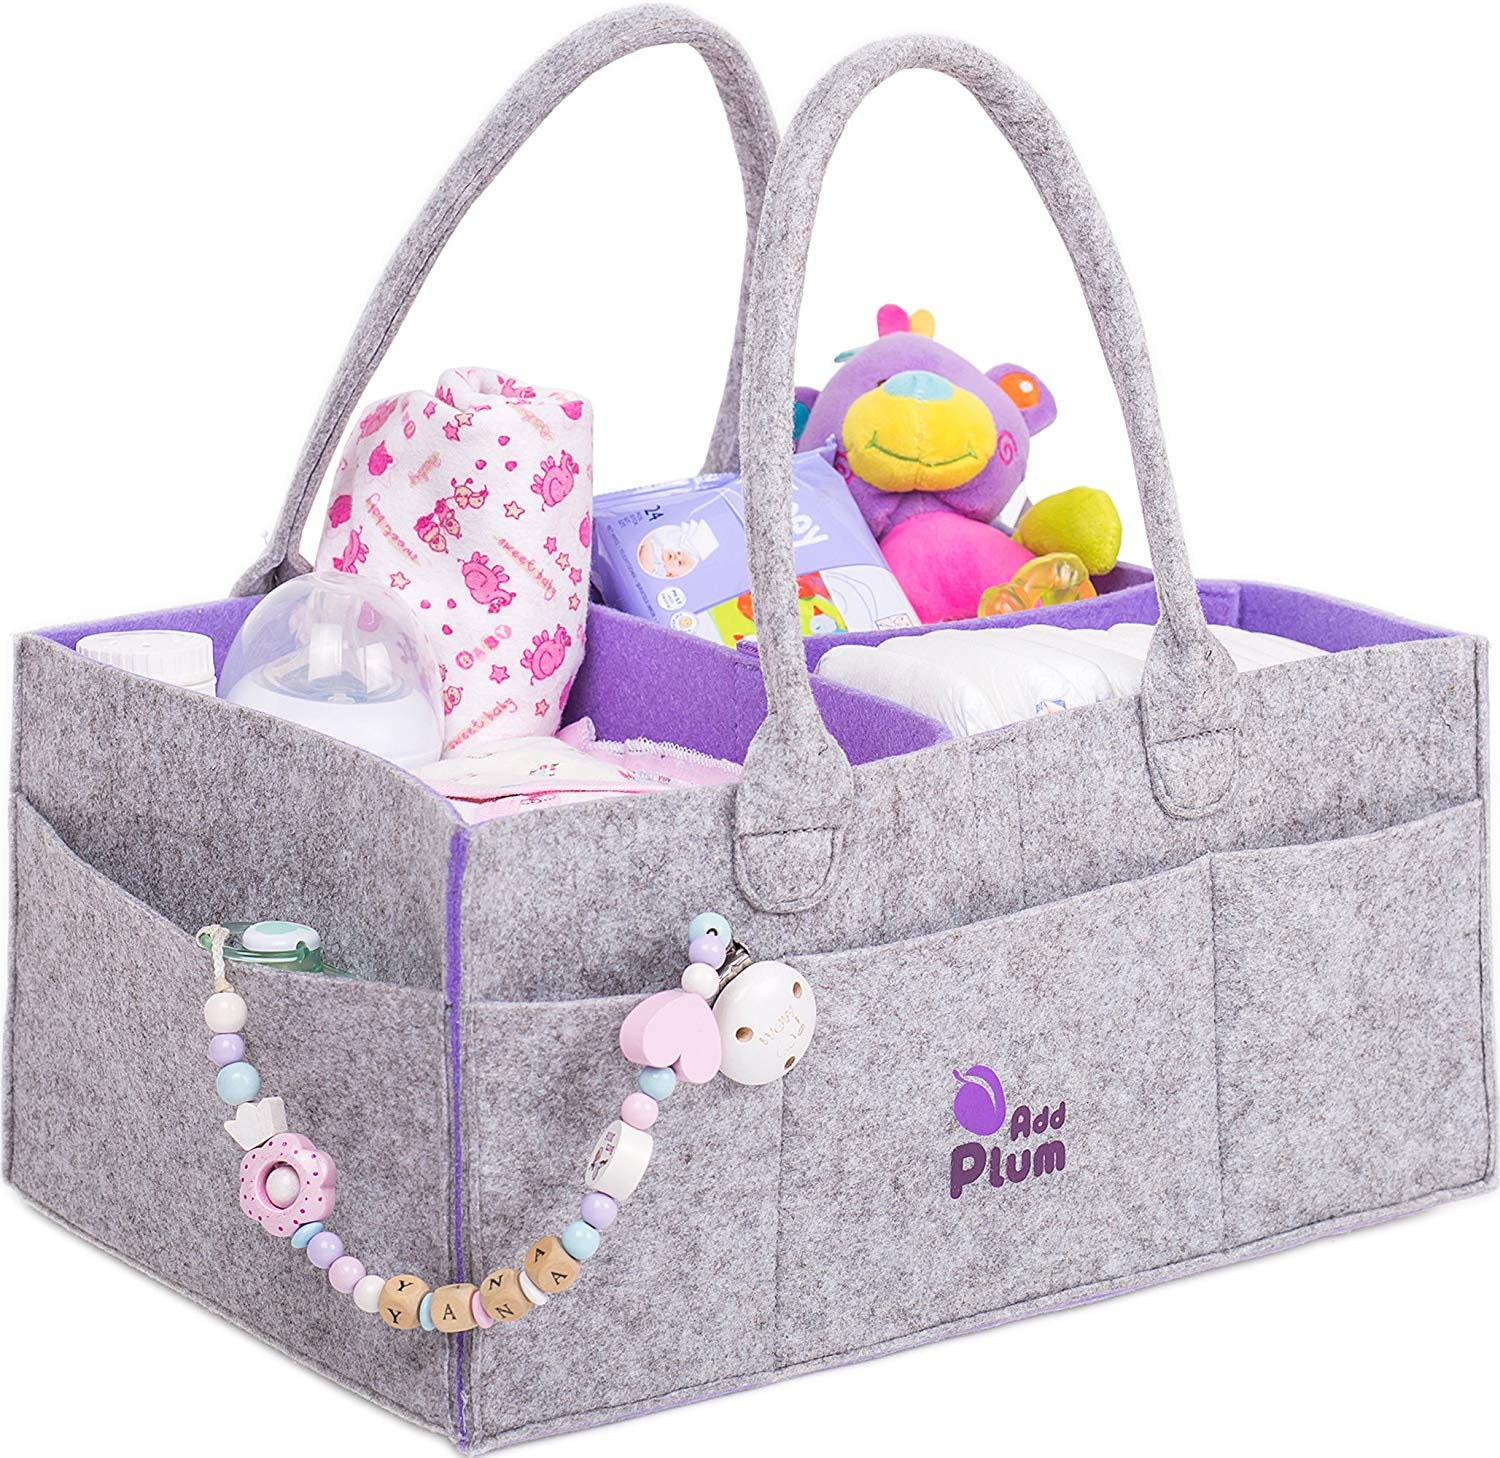 Portable Large Gray Felt Diaper Caddy Tote for Changing Table Baby Diaper Caddy Organizer Boy Girl Shower Gift Basket Nursery Storage Bin and Car Travel Organiser for Diapers and Baby Wipes